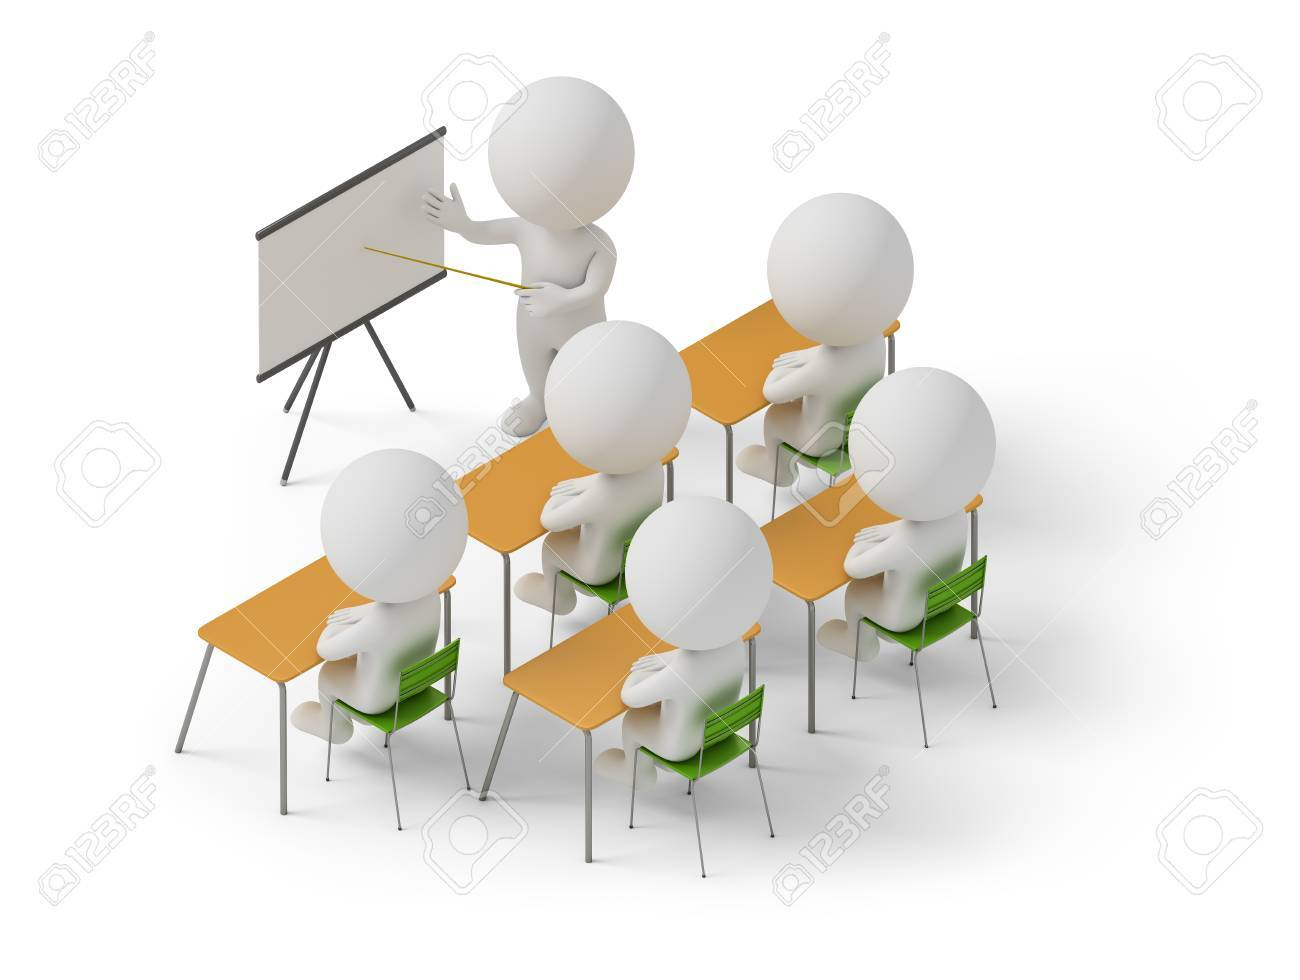 Isometric people studying in training courses. 3d image. White background. Stock Photo - 70408864